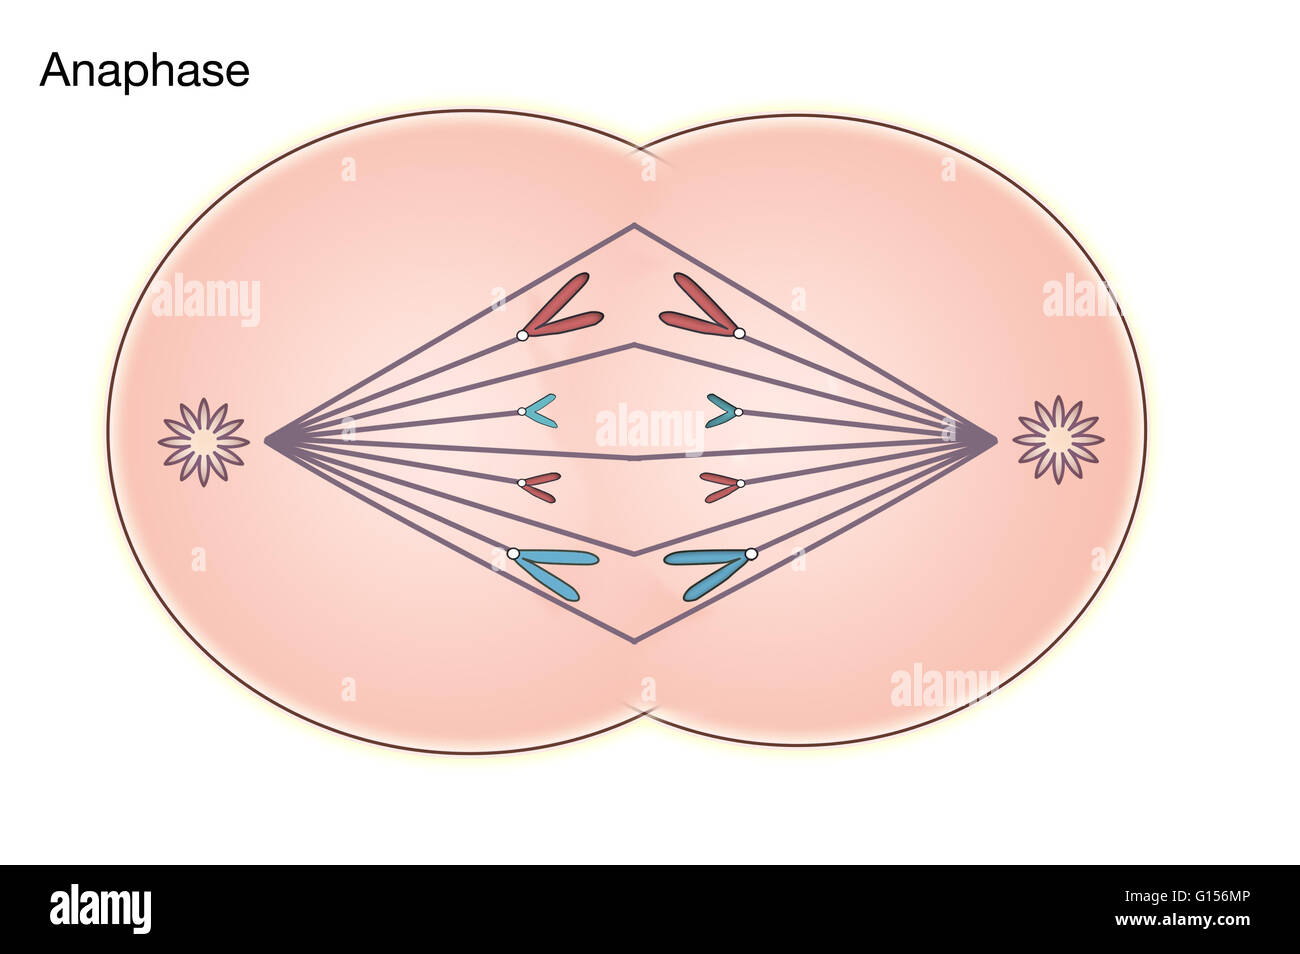 Diagram of anaphase of mitosis in an animal cell stock photo diagram of anaphase of mitosis in an animal cell pooptronica